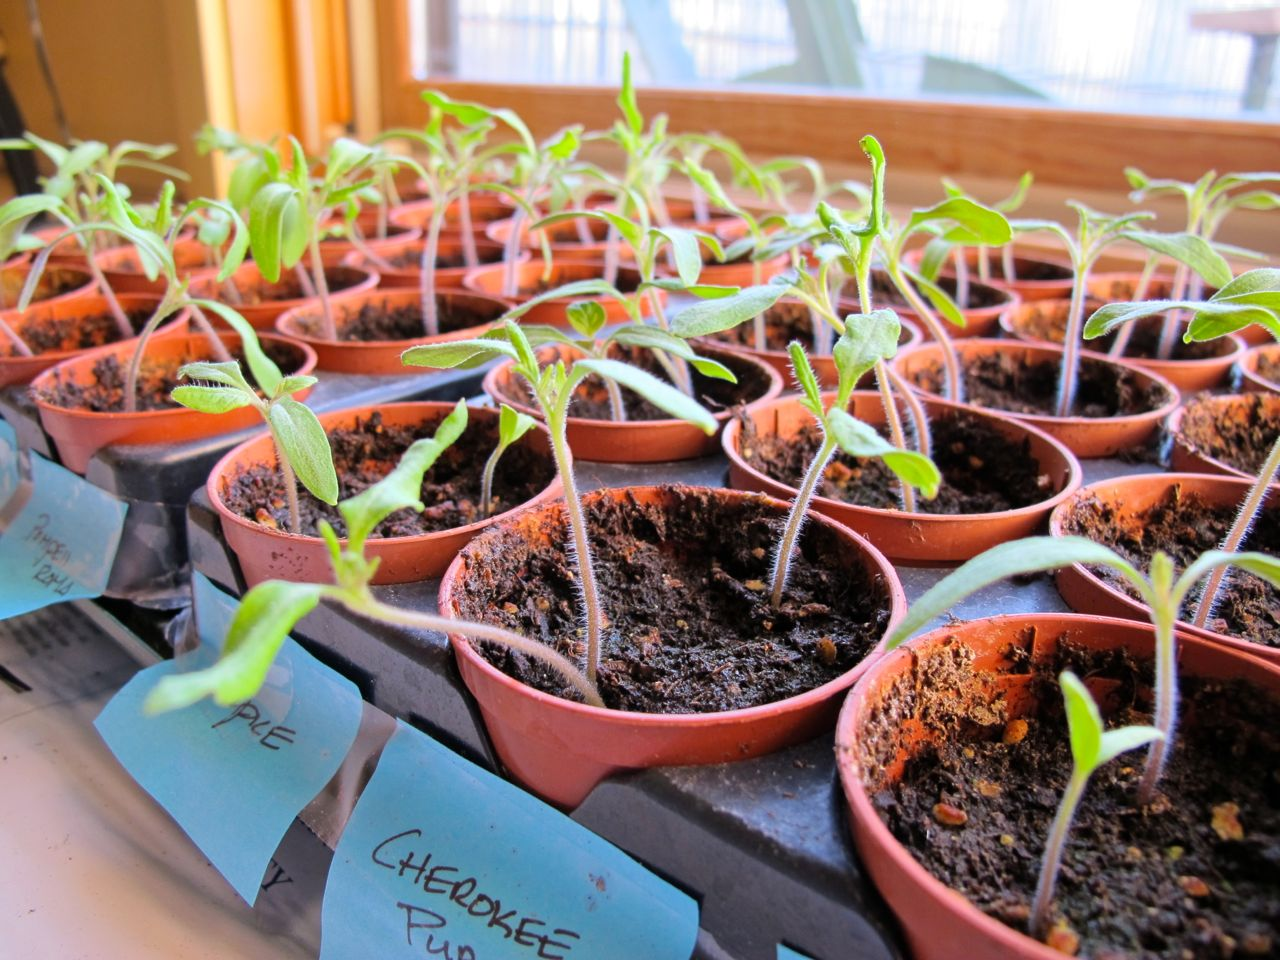 Baby tomato plants, just putting out their first real leaves.